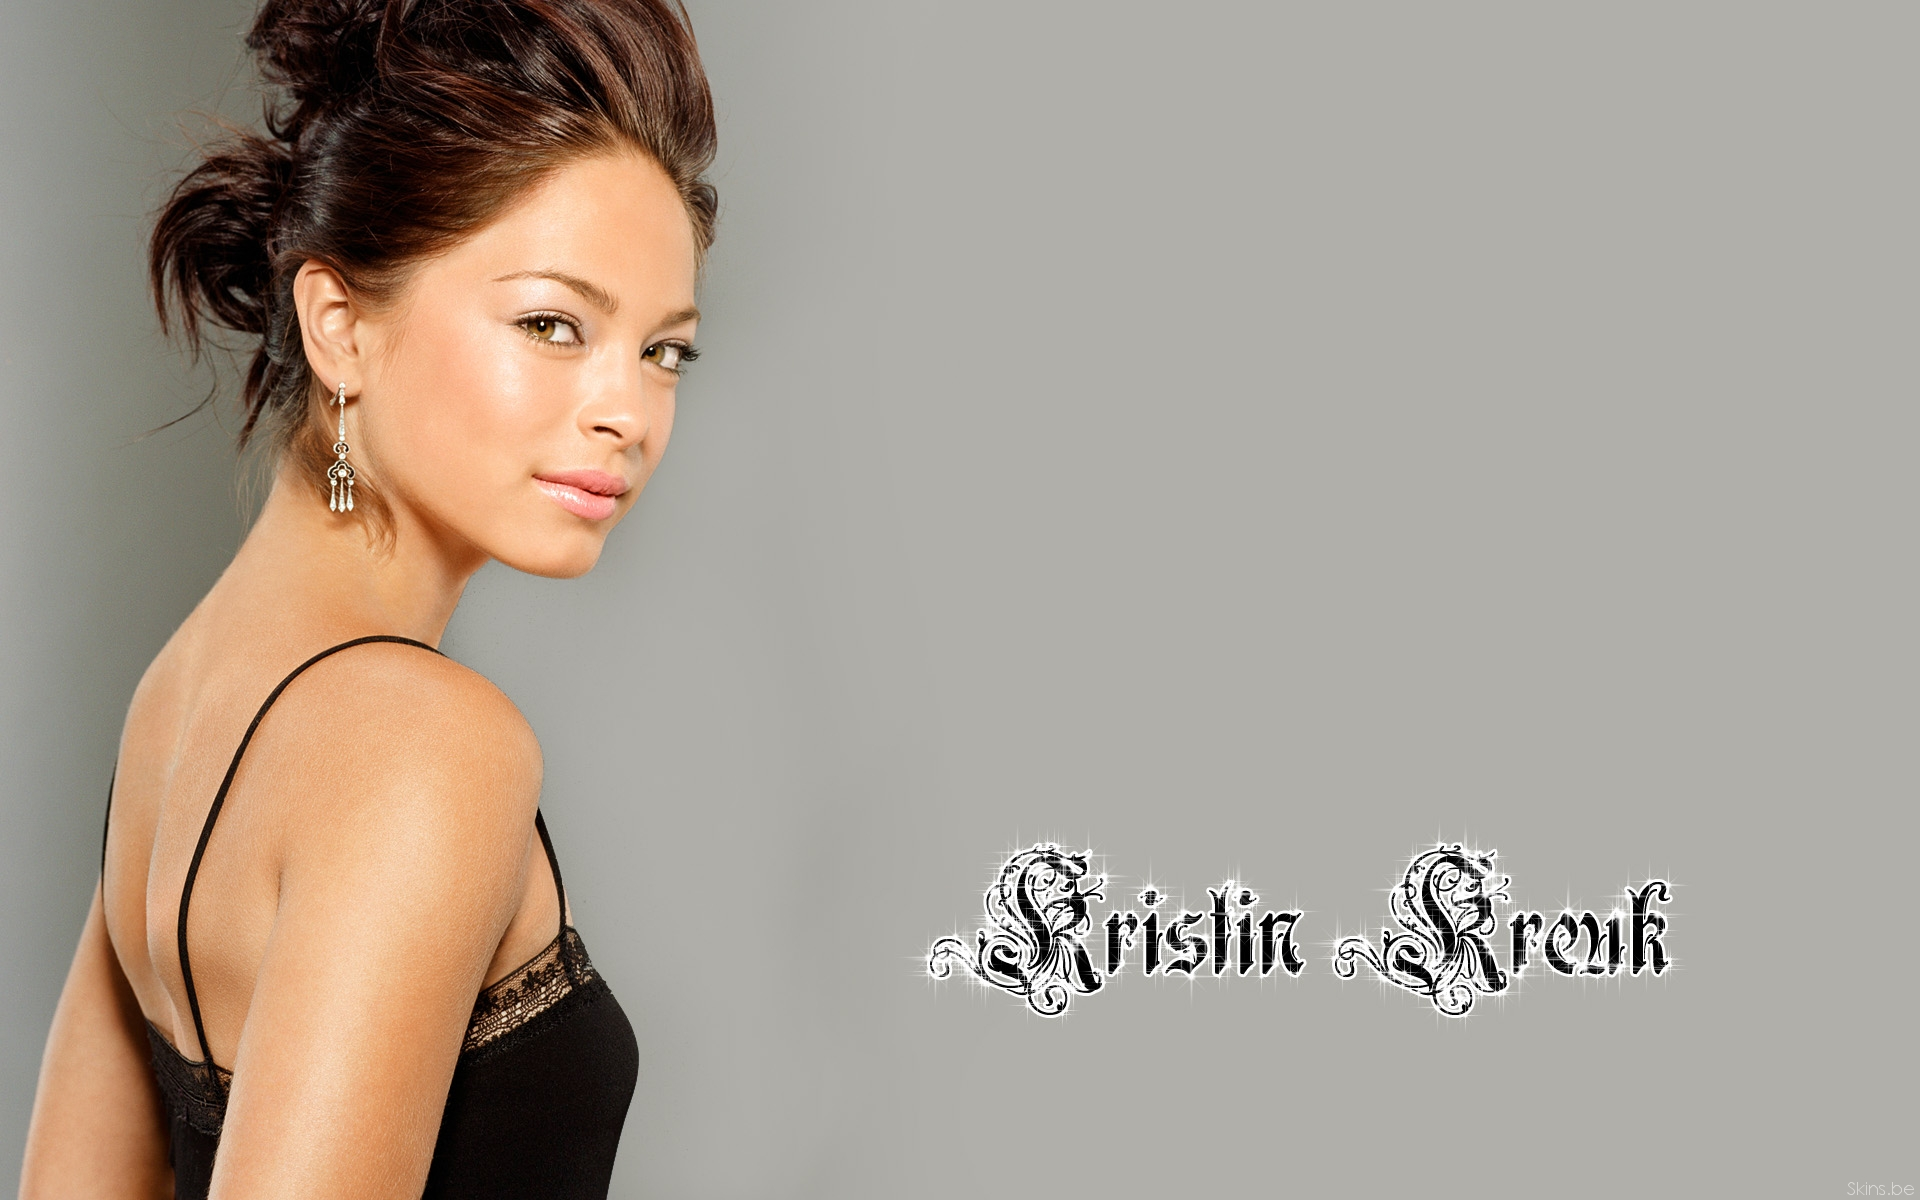 brunettes, women, actress, Kristin Kreuk - desktop wallpaper